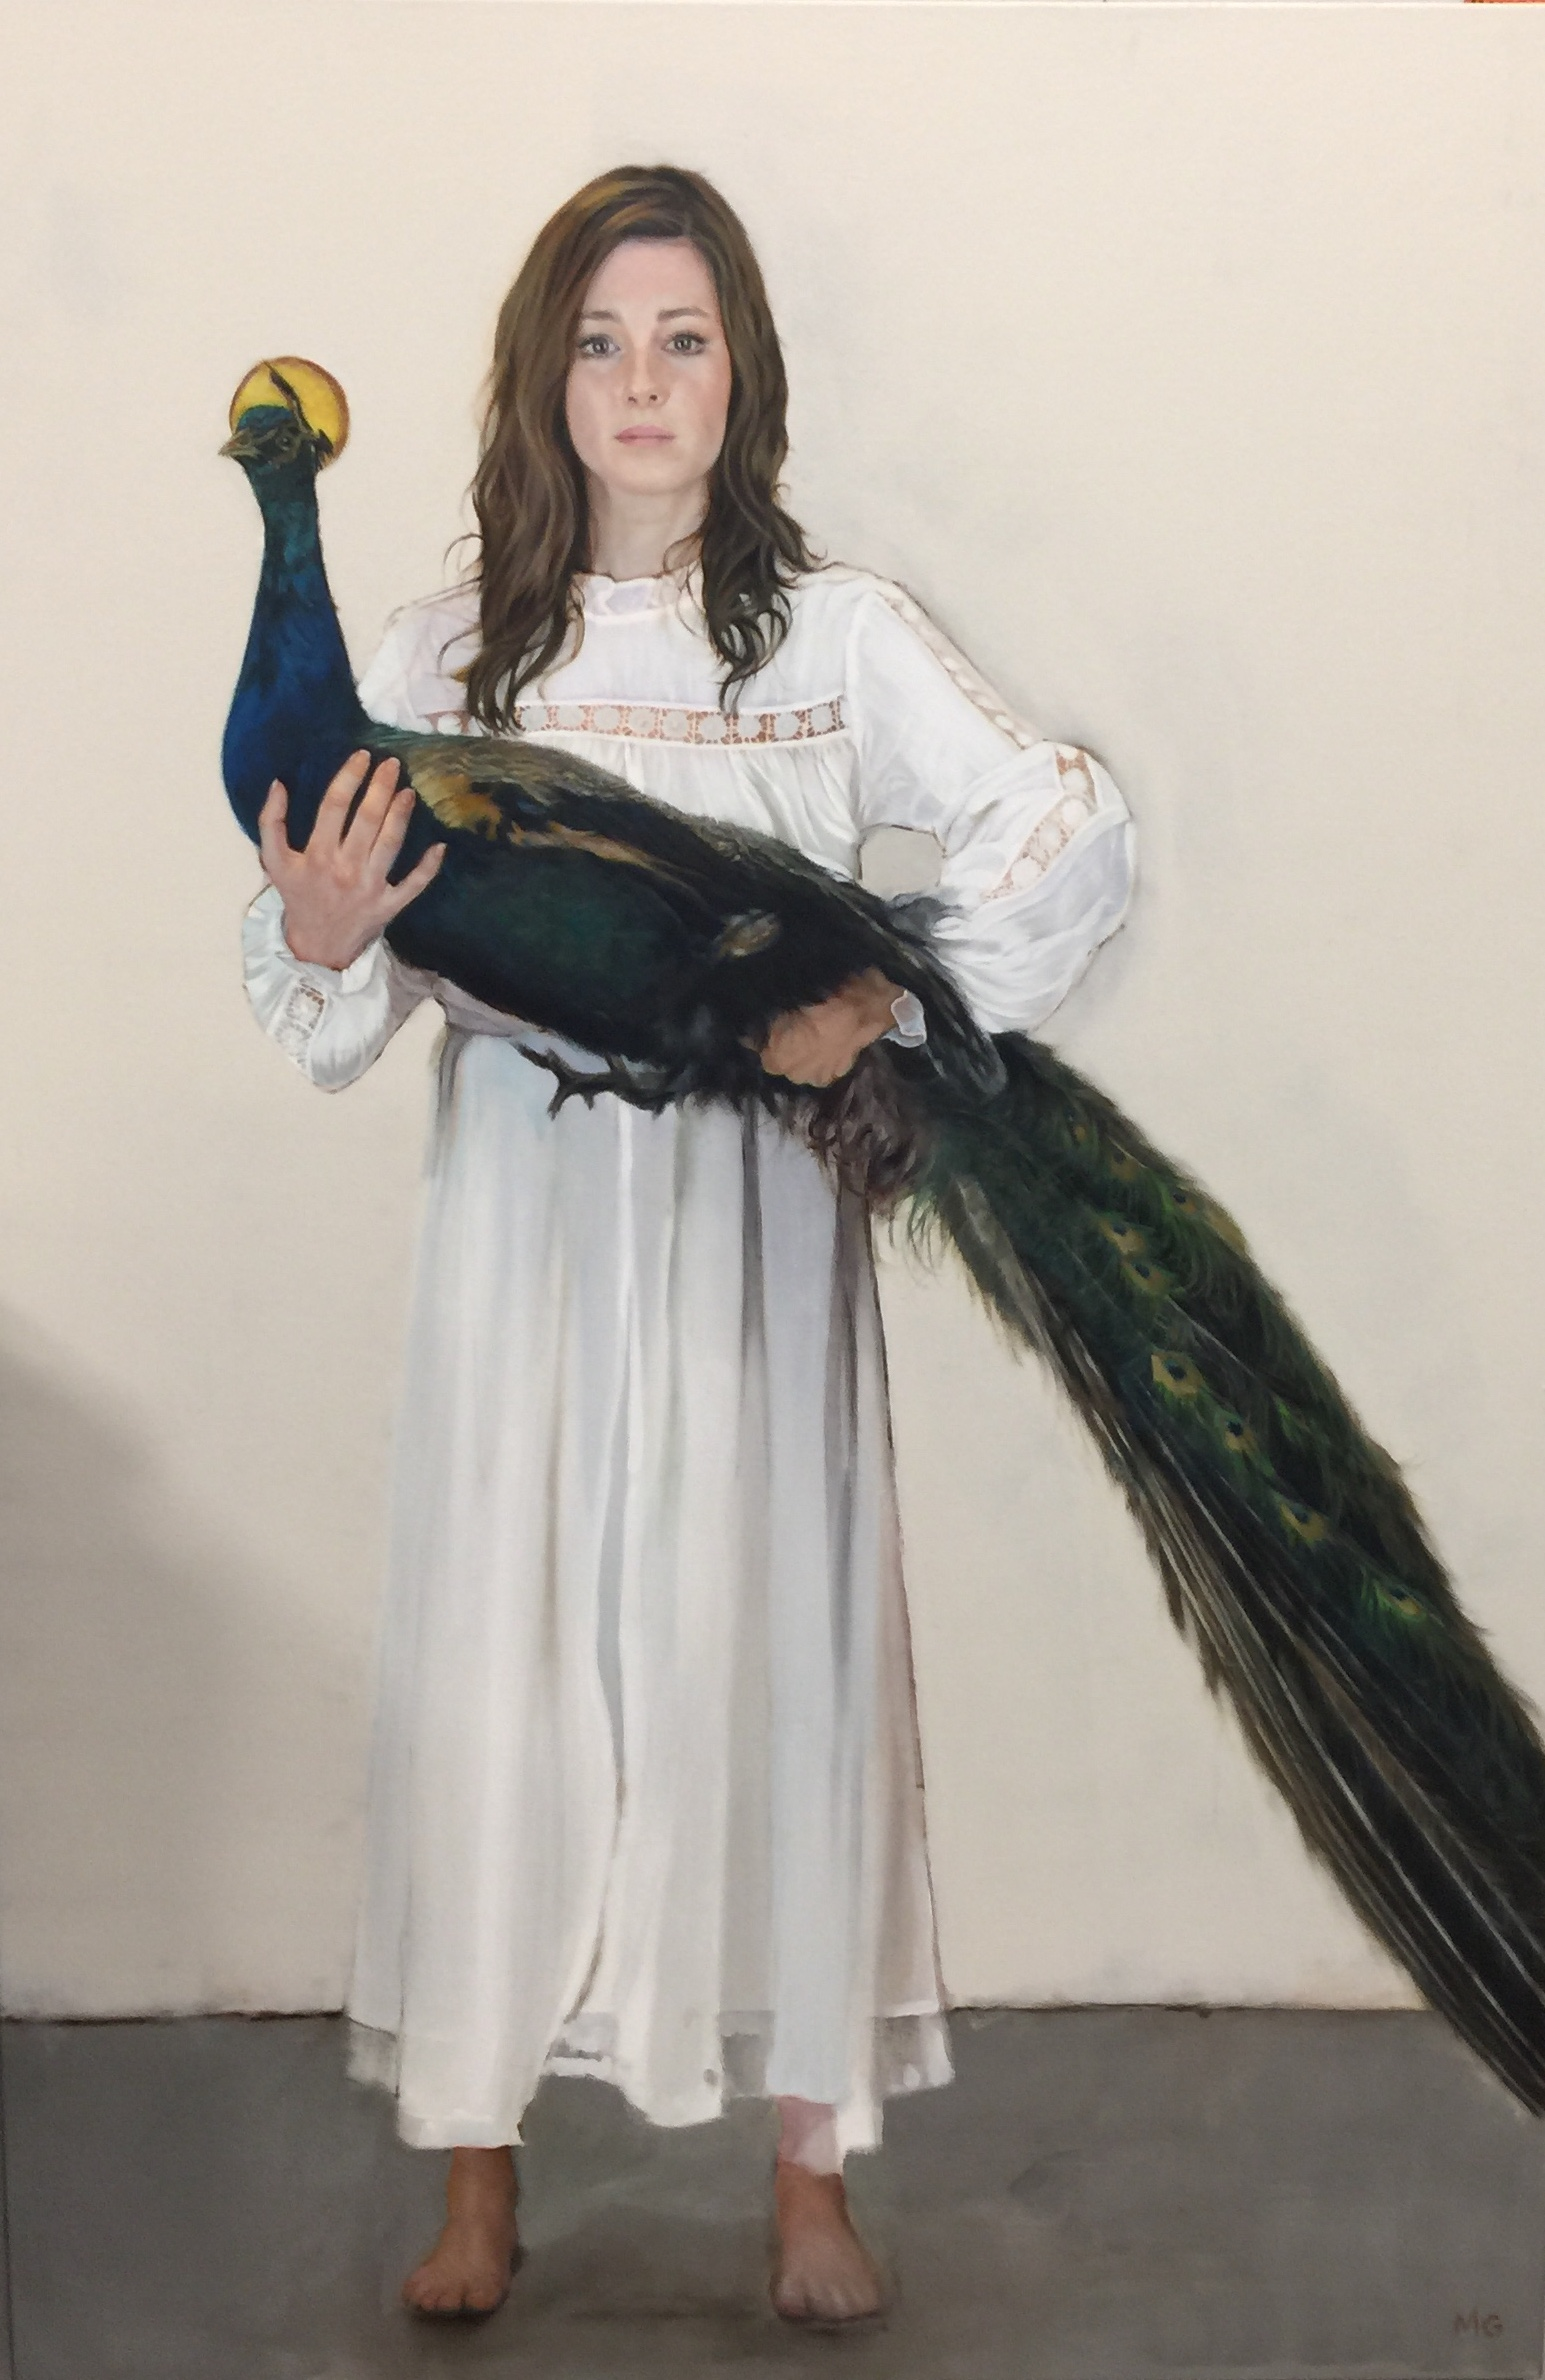 Girl with a peacock